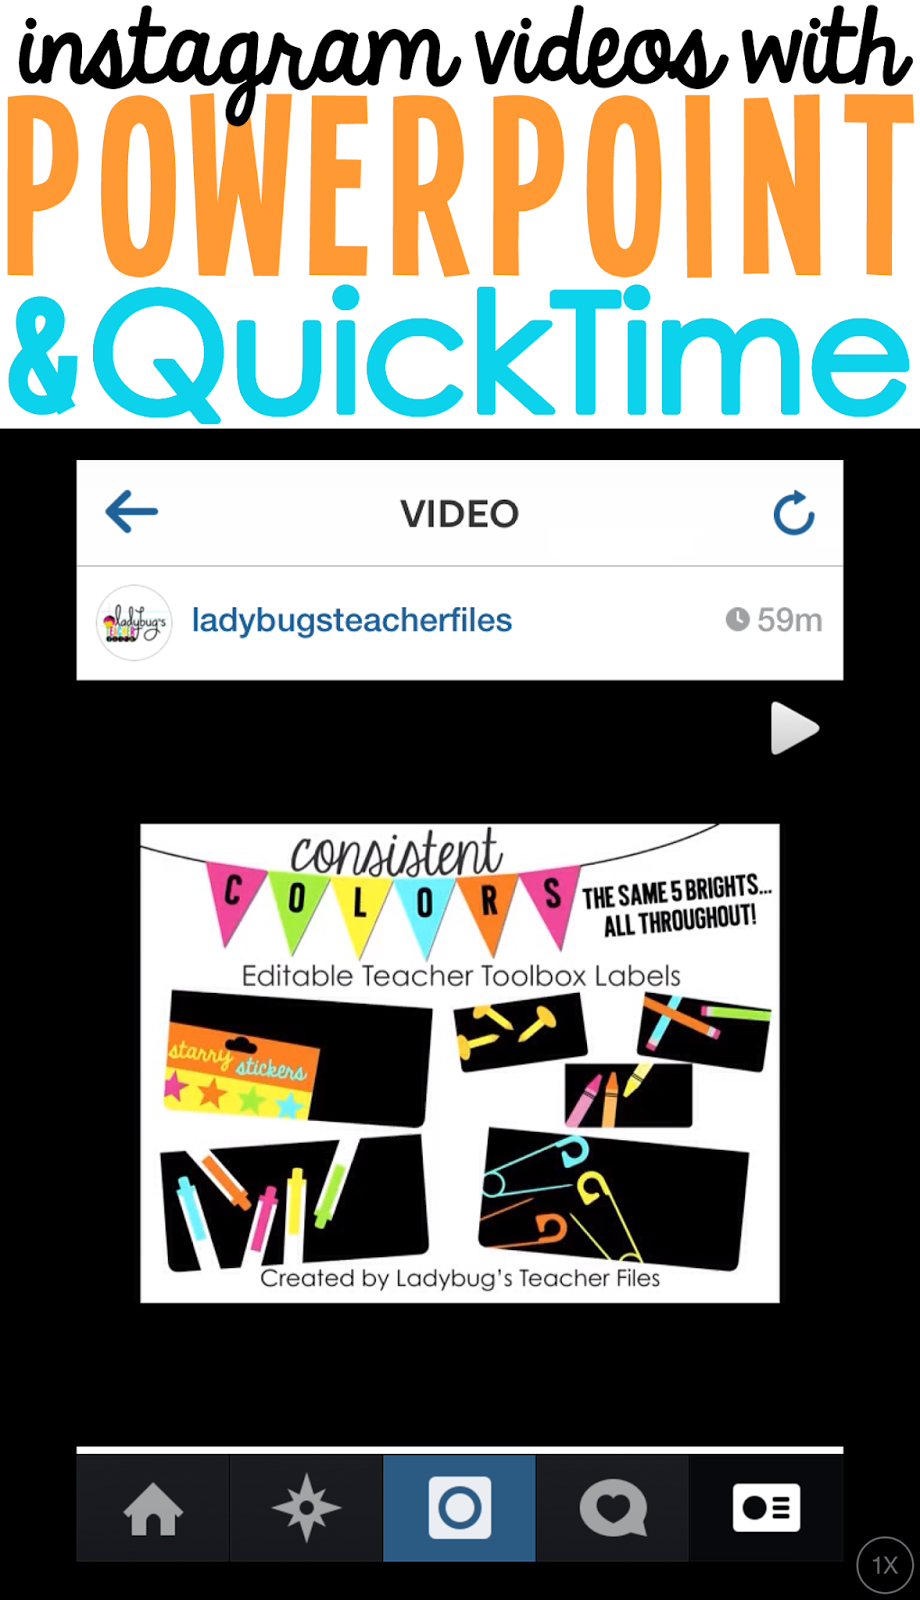 Make Instagram Videos with PowerPoint and QuickTime